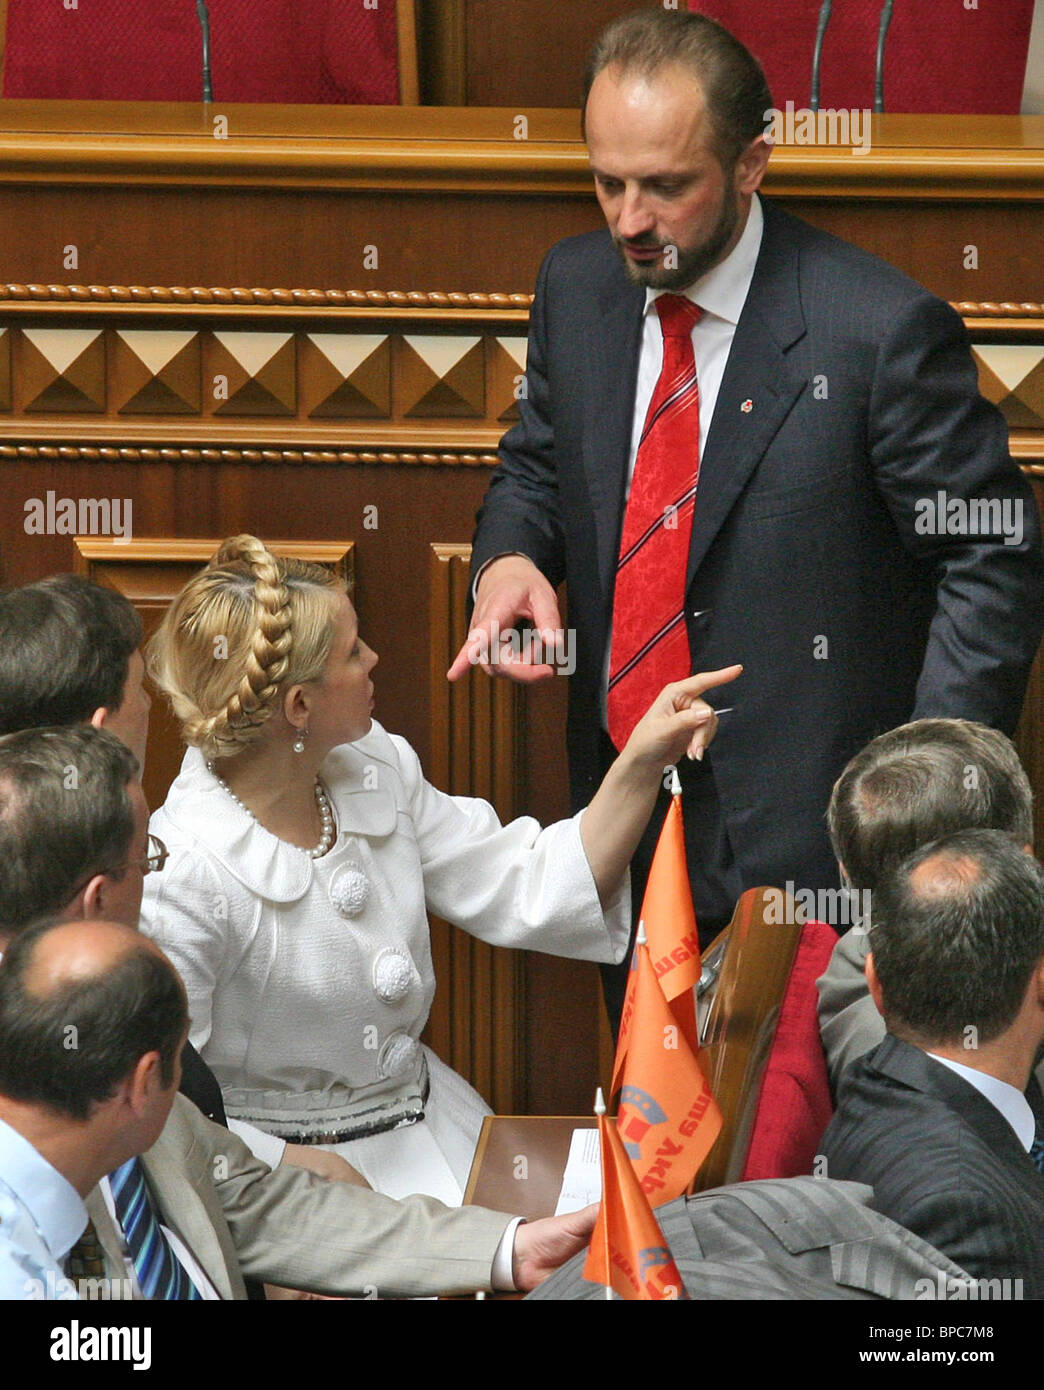 Creation of coalition officially announced in Ukrainian parliament - Stock Image